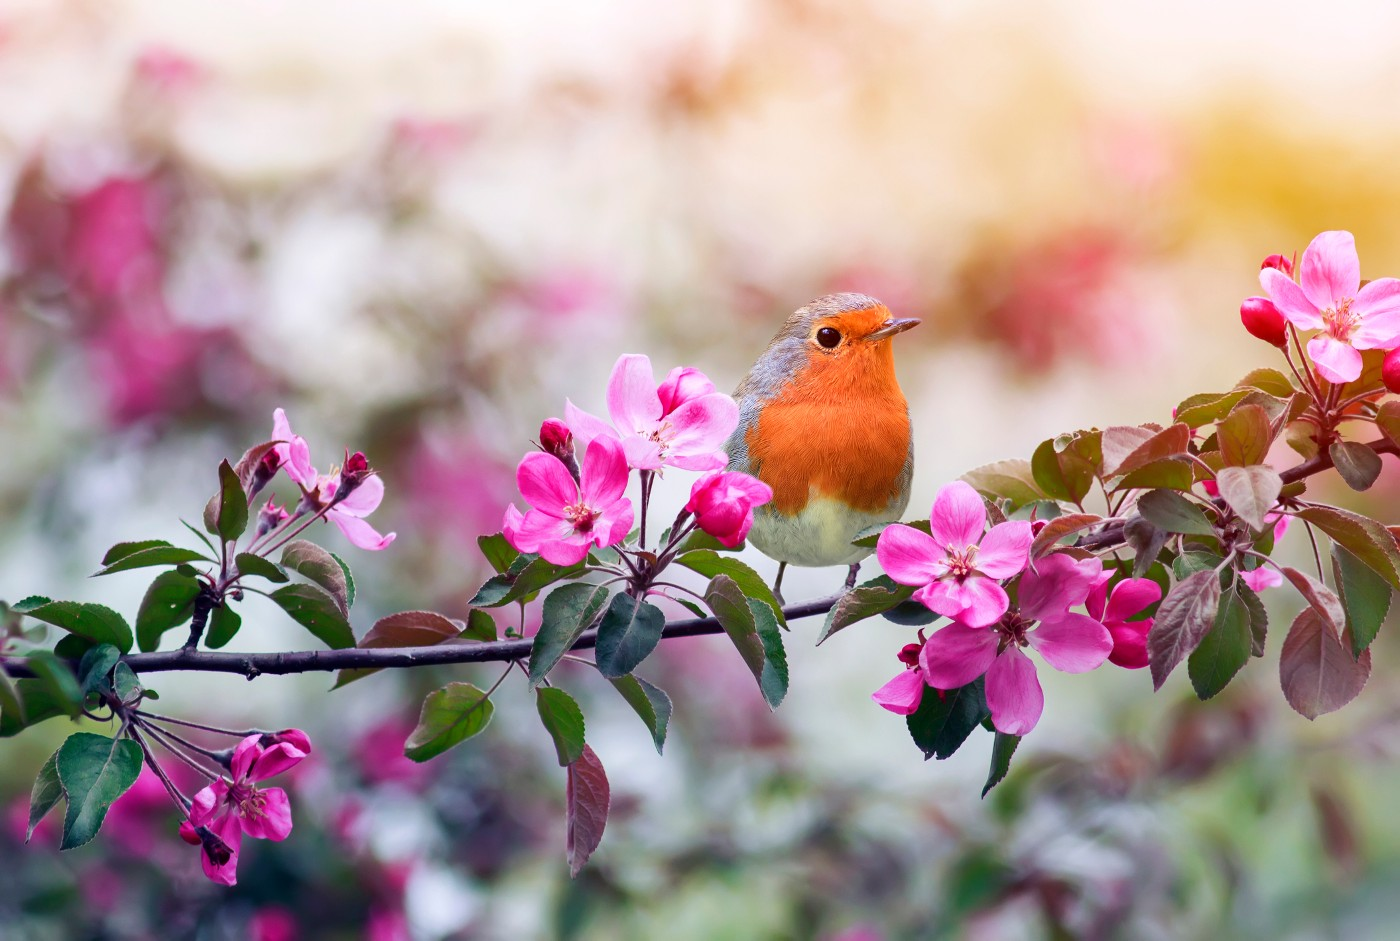 https://tickertapecdn.tdameritrade.com/assets/images/pages/md/Bird on a branch with pink flowers: Seasonal myths for traders